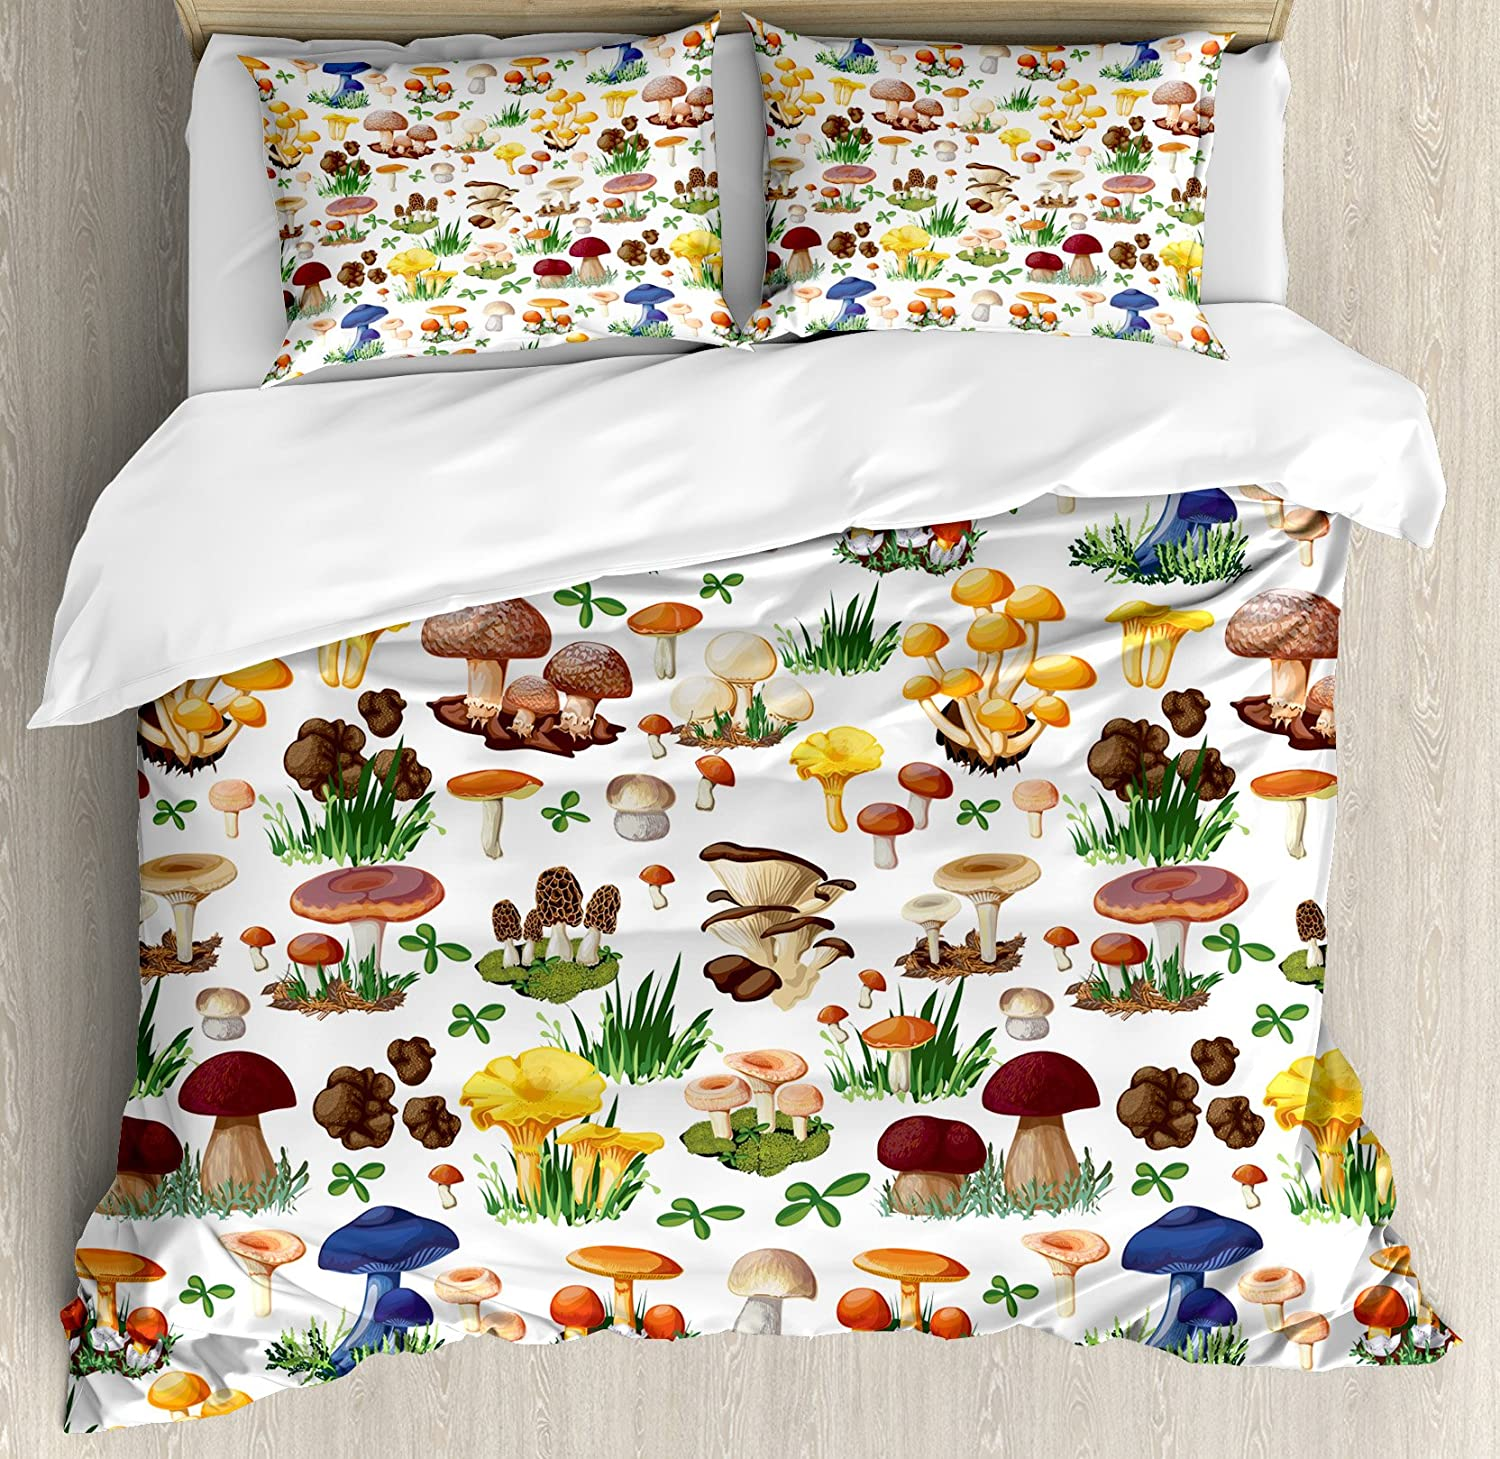 Ambesonne Mushroom Duvet Cover Set Queen Size, Pattern with Types of Mushrooms Wild Species Organic Natural Food Garden Theme, Decorative 3 Piece Bedding Set with 2 Pillow Shams, White Brown